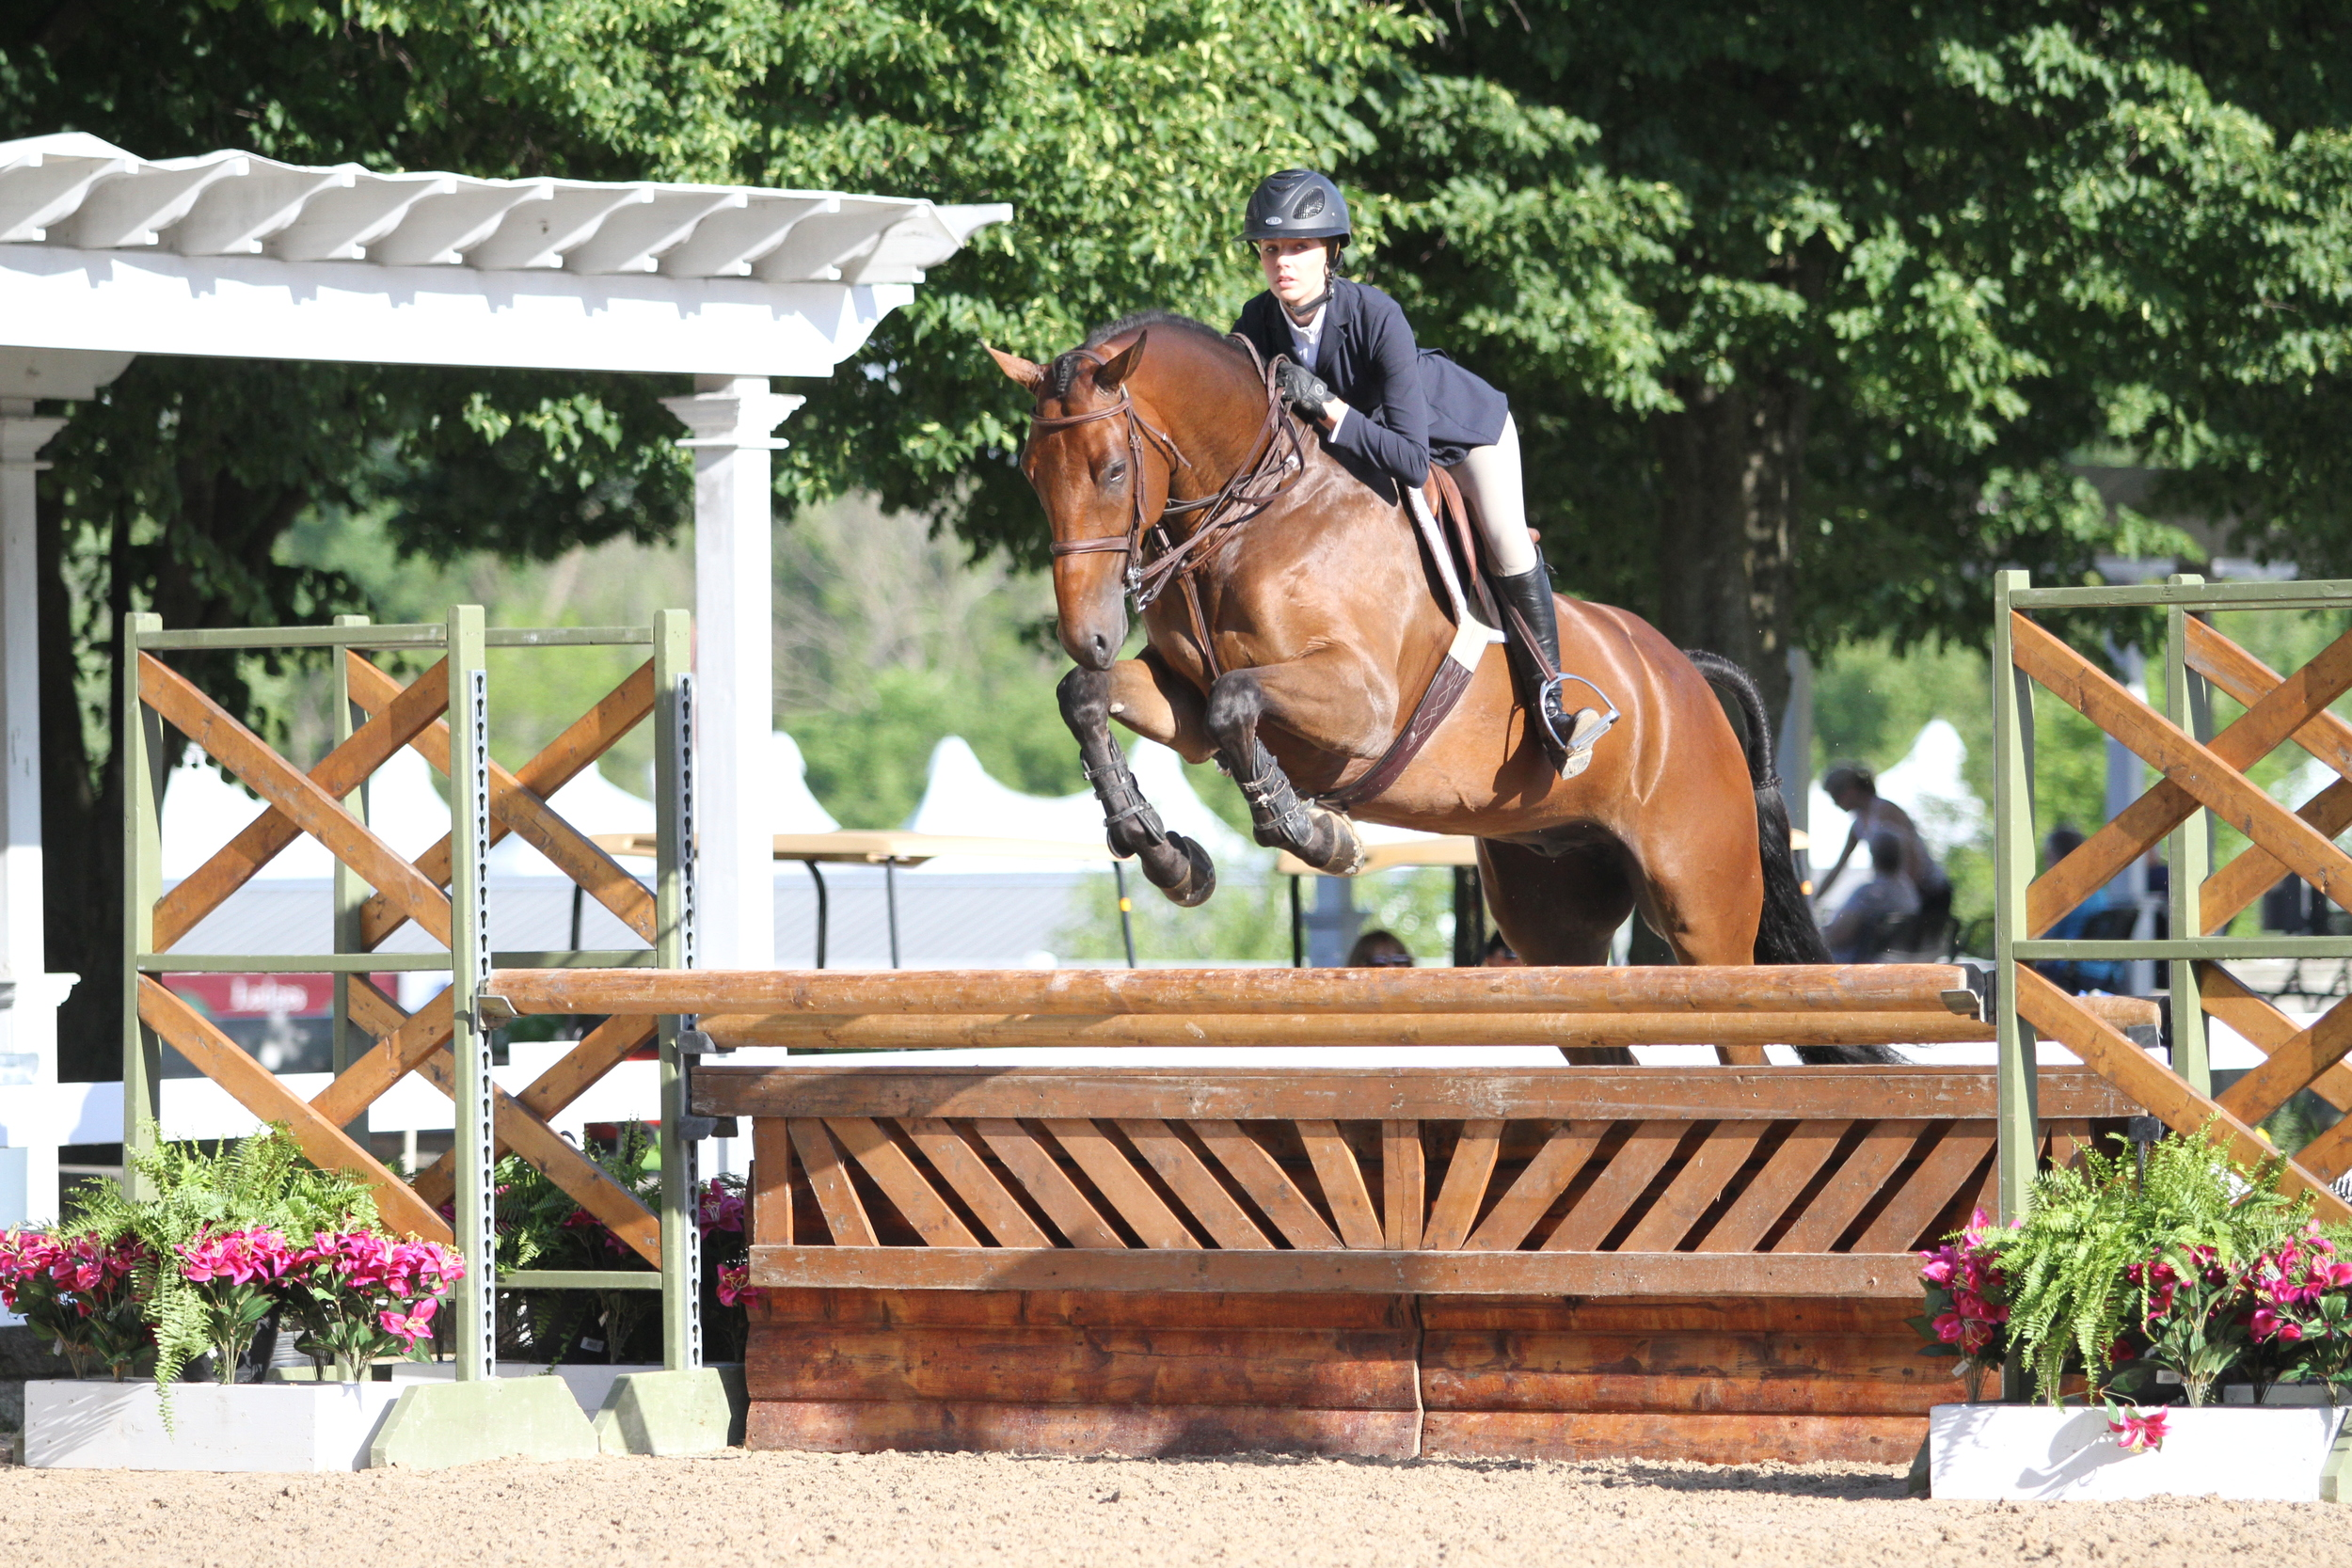 """USEF/Pessoa Hunt Seat Medal    Claire McKean took the equitation medal with Quintus Rubin, owned by North Run.   He really just put all the parts together today,"""" said McKean of the six-year-old hunter. """"He jumped really well, so I was really proud of him. For him, the counter cantering was a challenge. He doesn't understand that quite yet, but he has the most comfortable canter and the sweetest personality."""" The pair came to compete from Houston, Texas."""